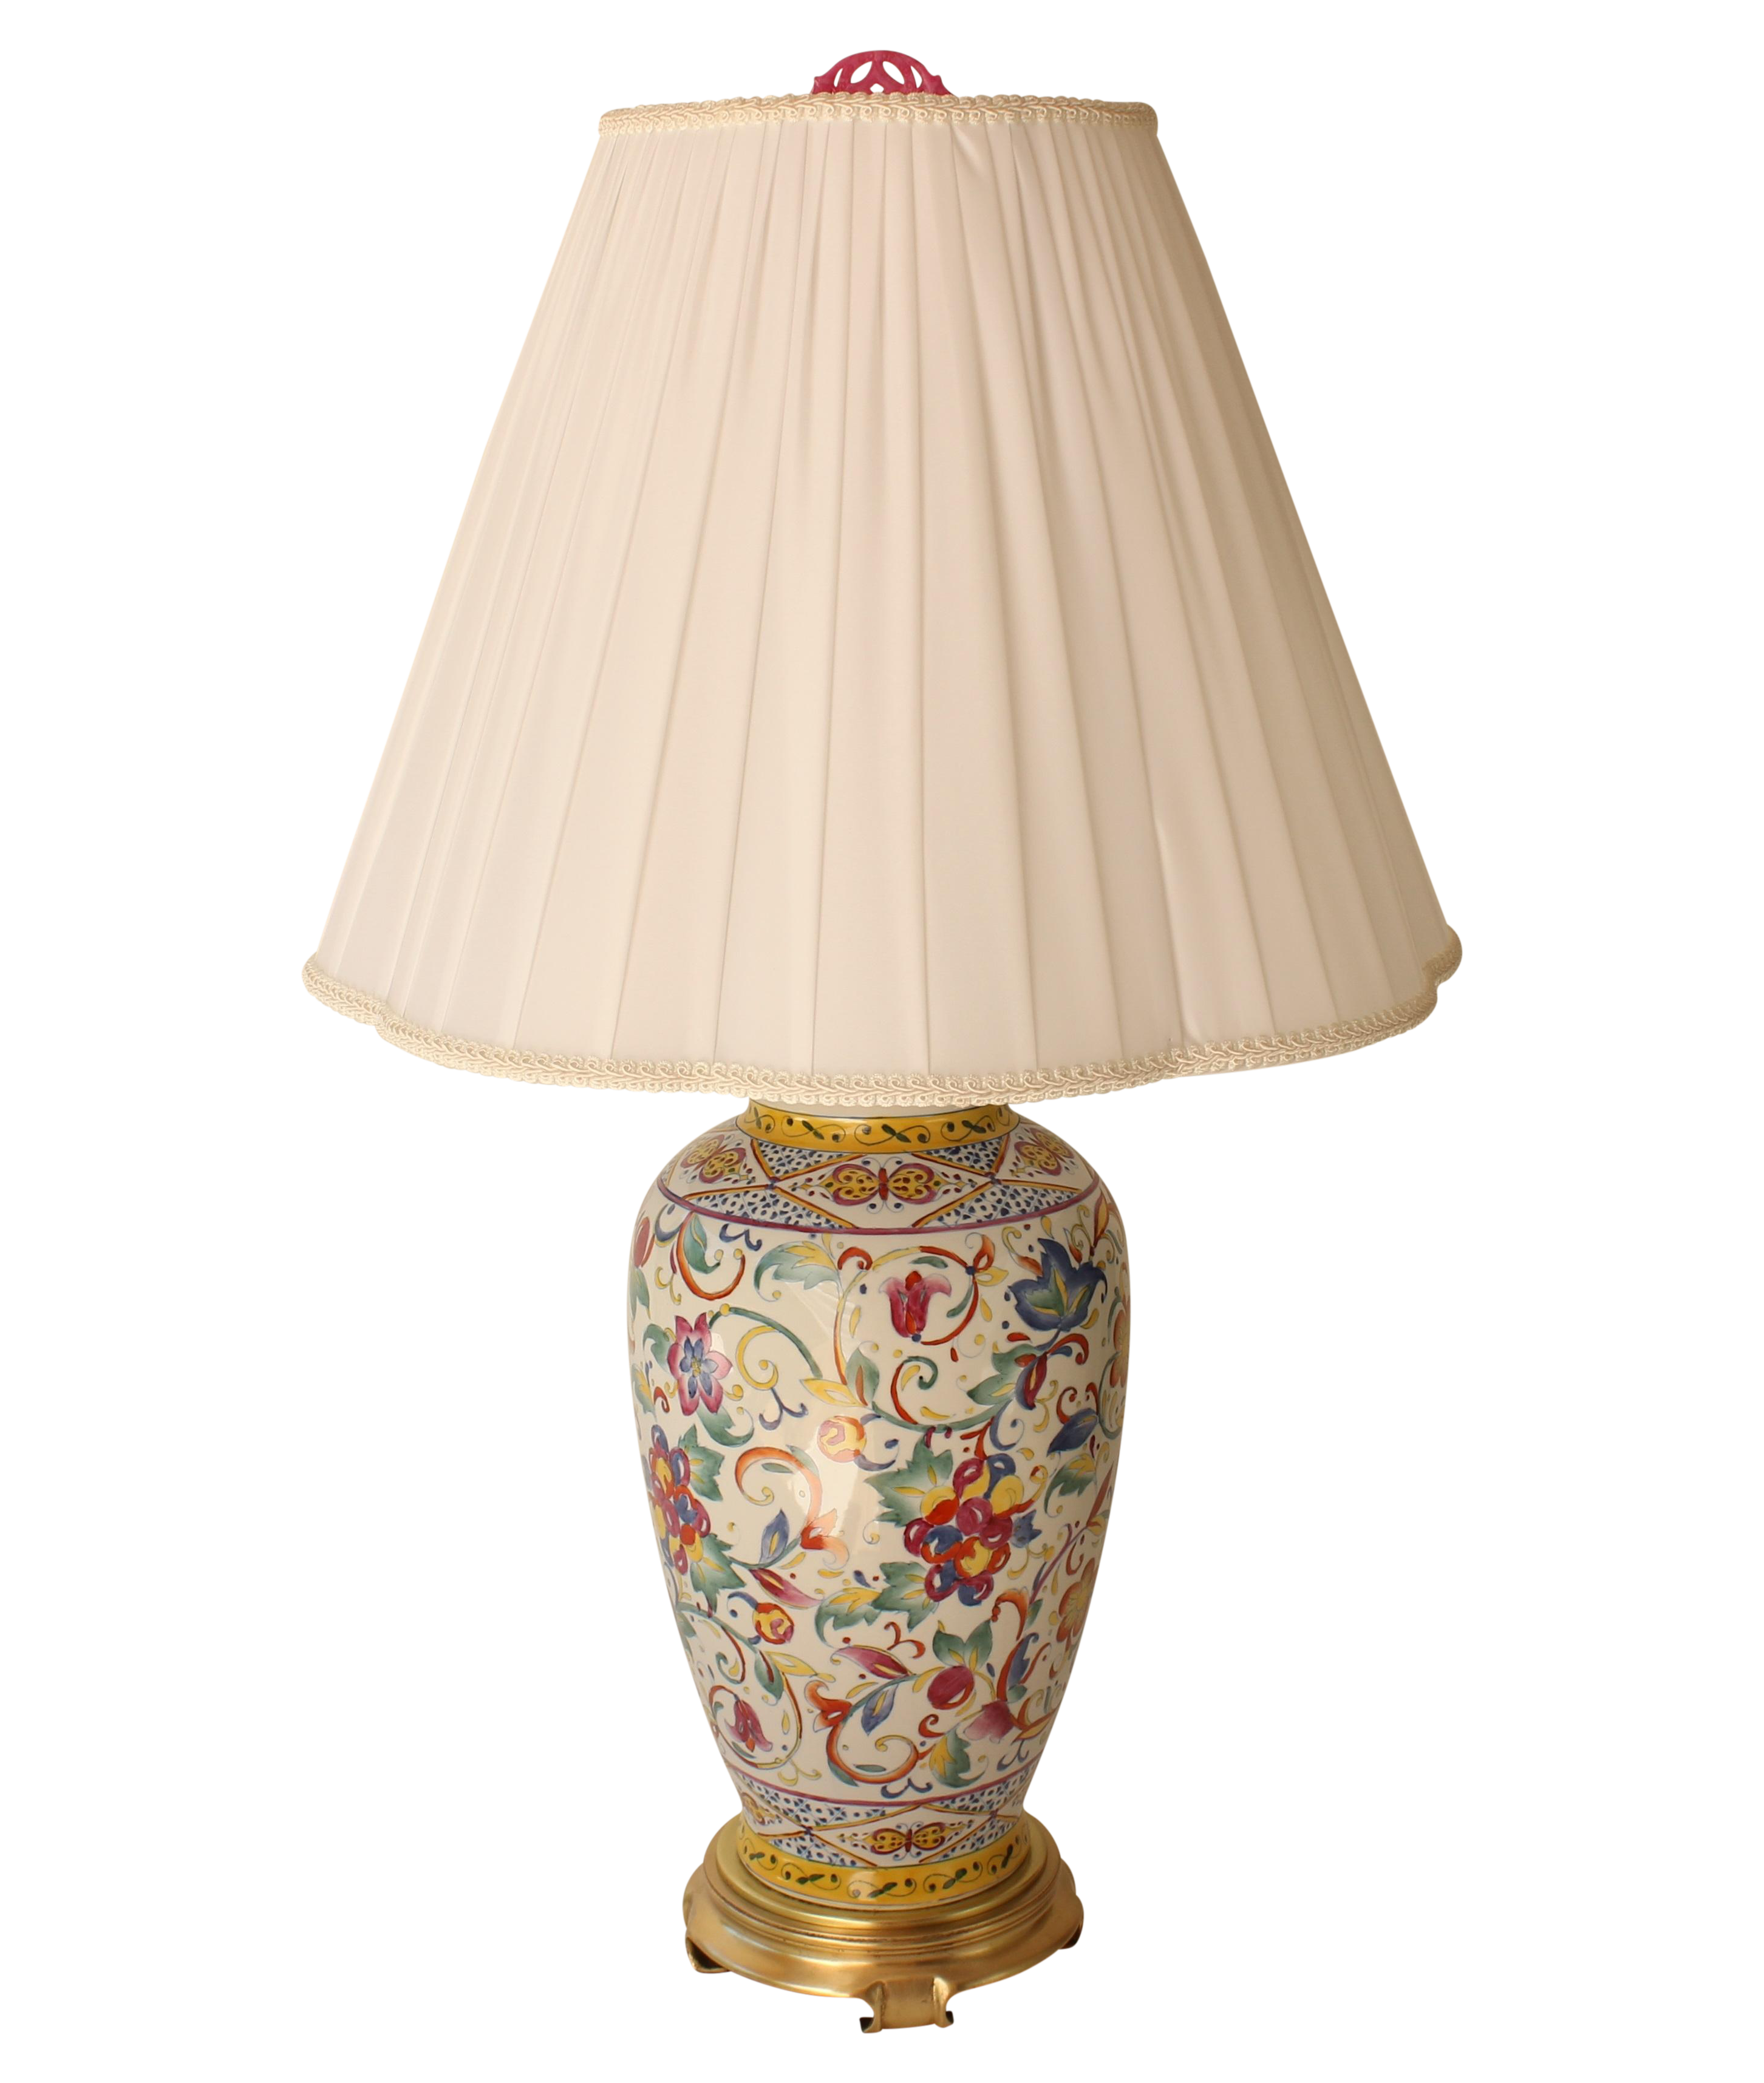 Frederick cooper floral table lamp chairish geotapseo Image collections